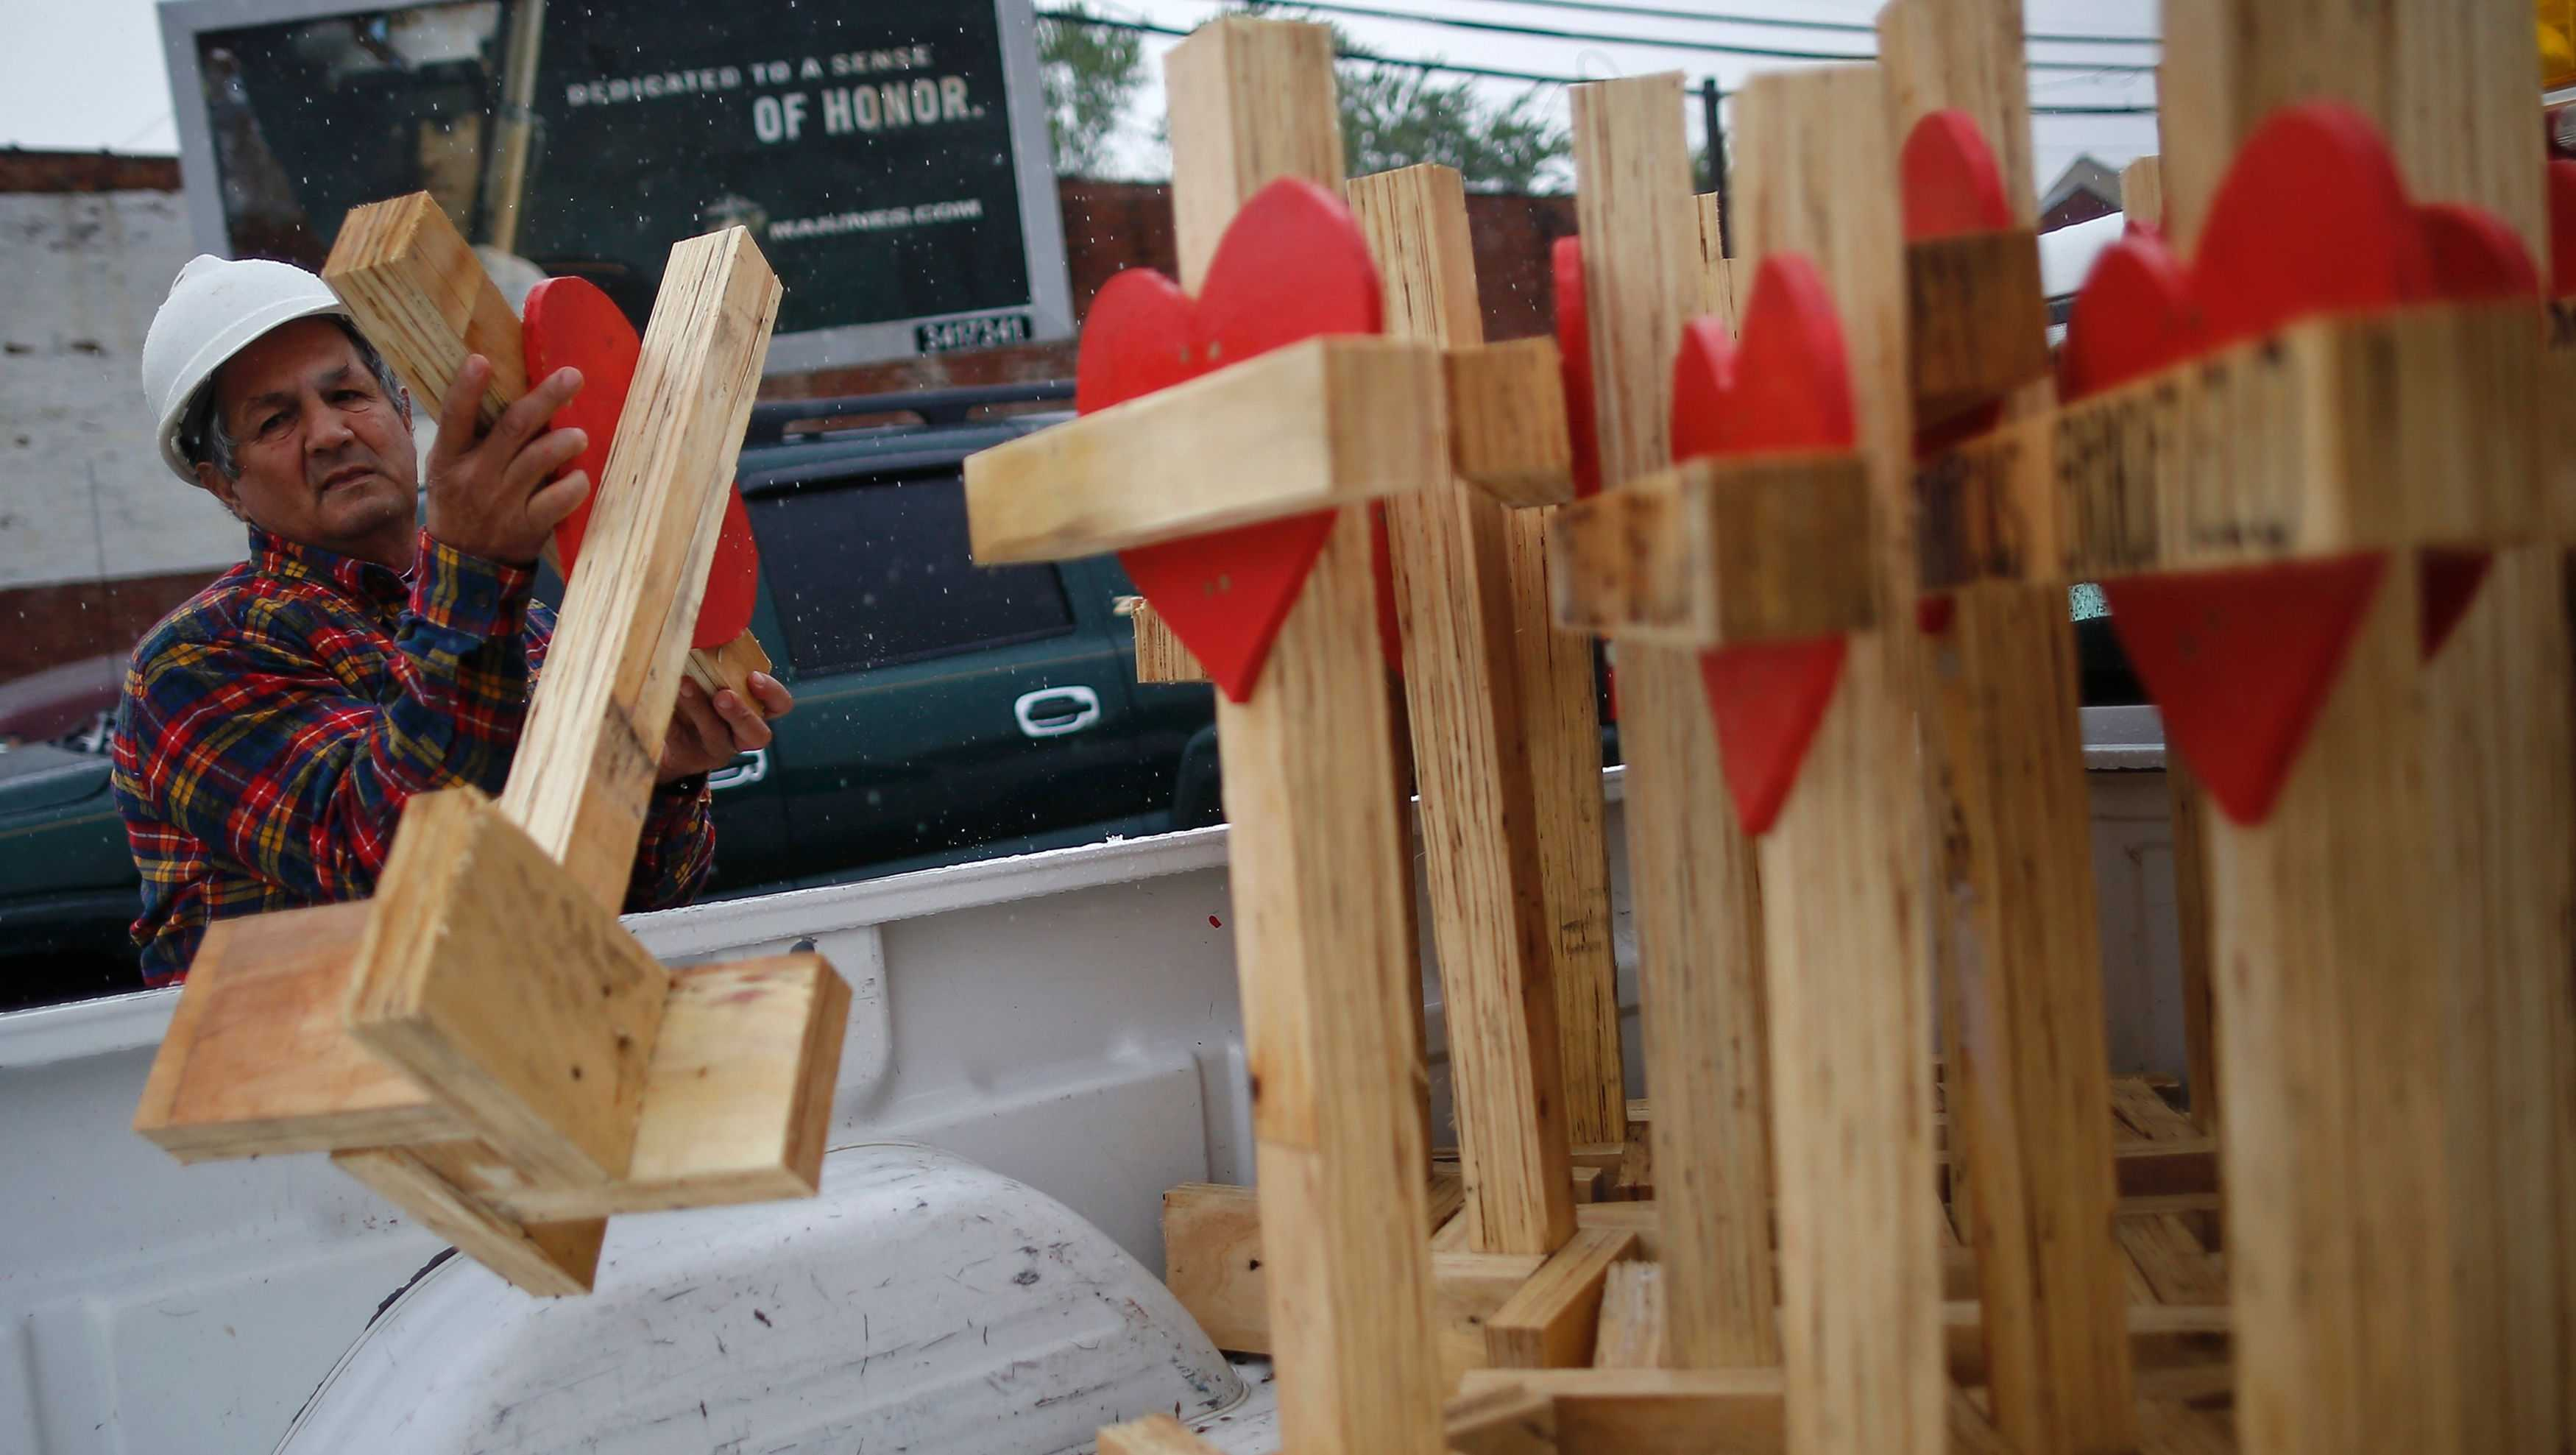 Greg Zanis unloads wooden crosses from the back of his truck at a planned prayer vigil and rally against violence in Chicago, Illinois on May 20, 2017.